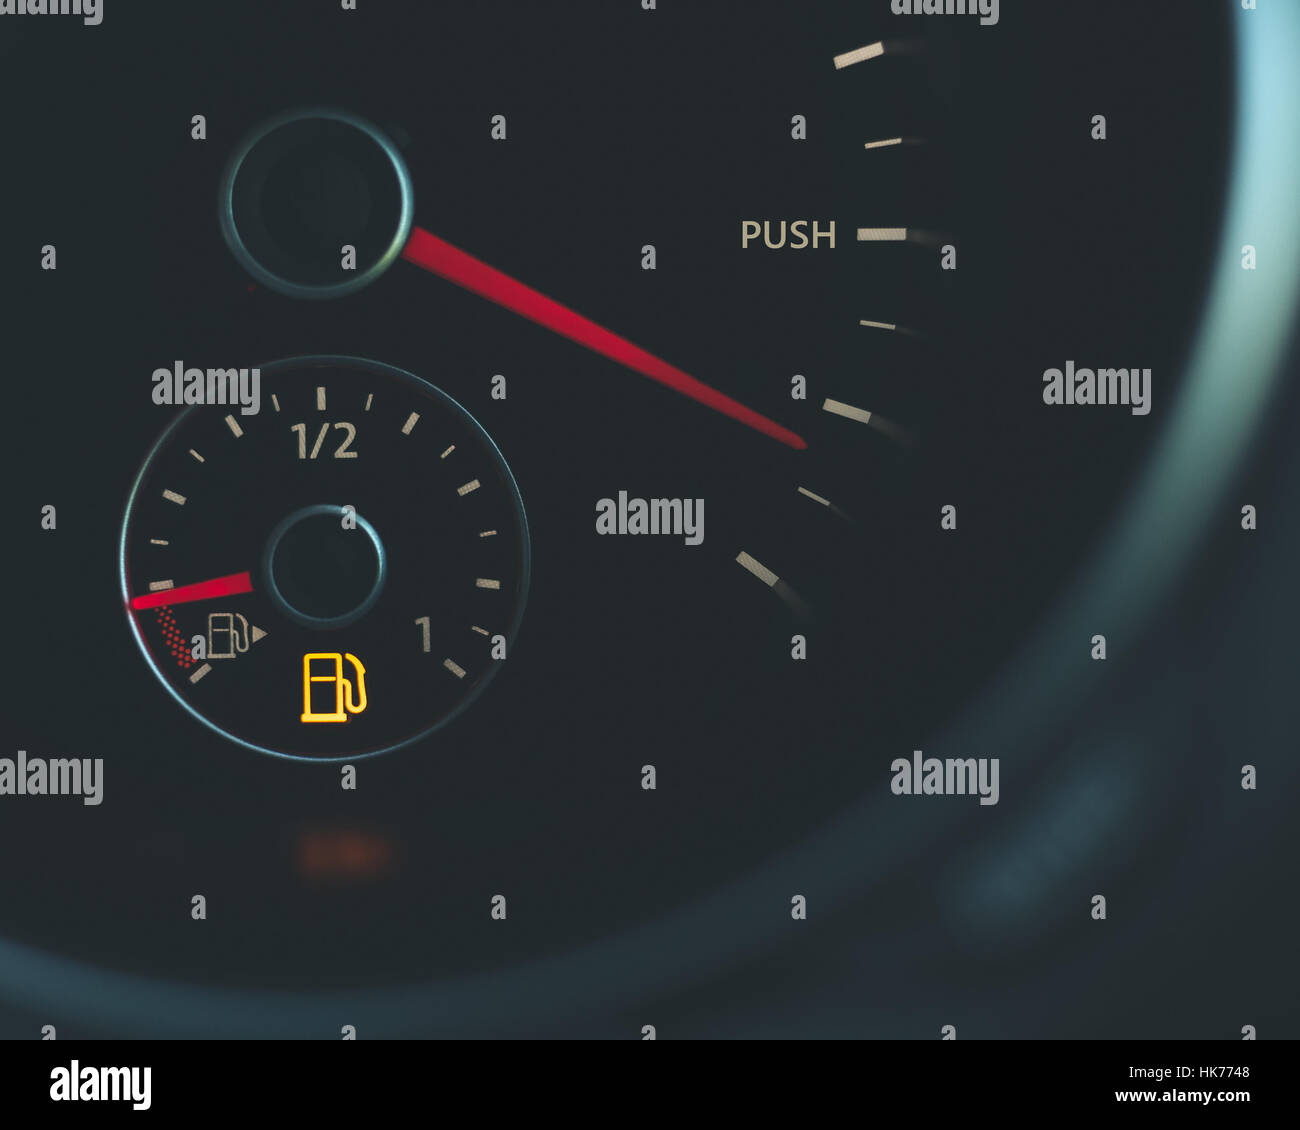 Push limits running on empty Car speedometer with word push fuel gauge with red needles and fuel light black silver - Stock Image